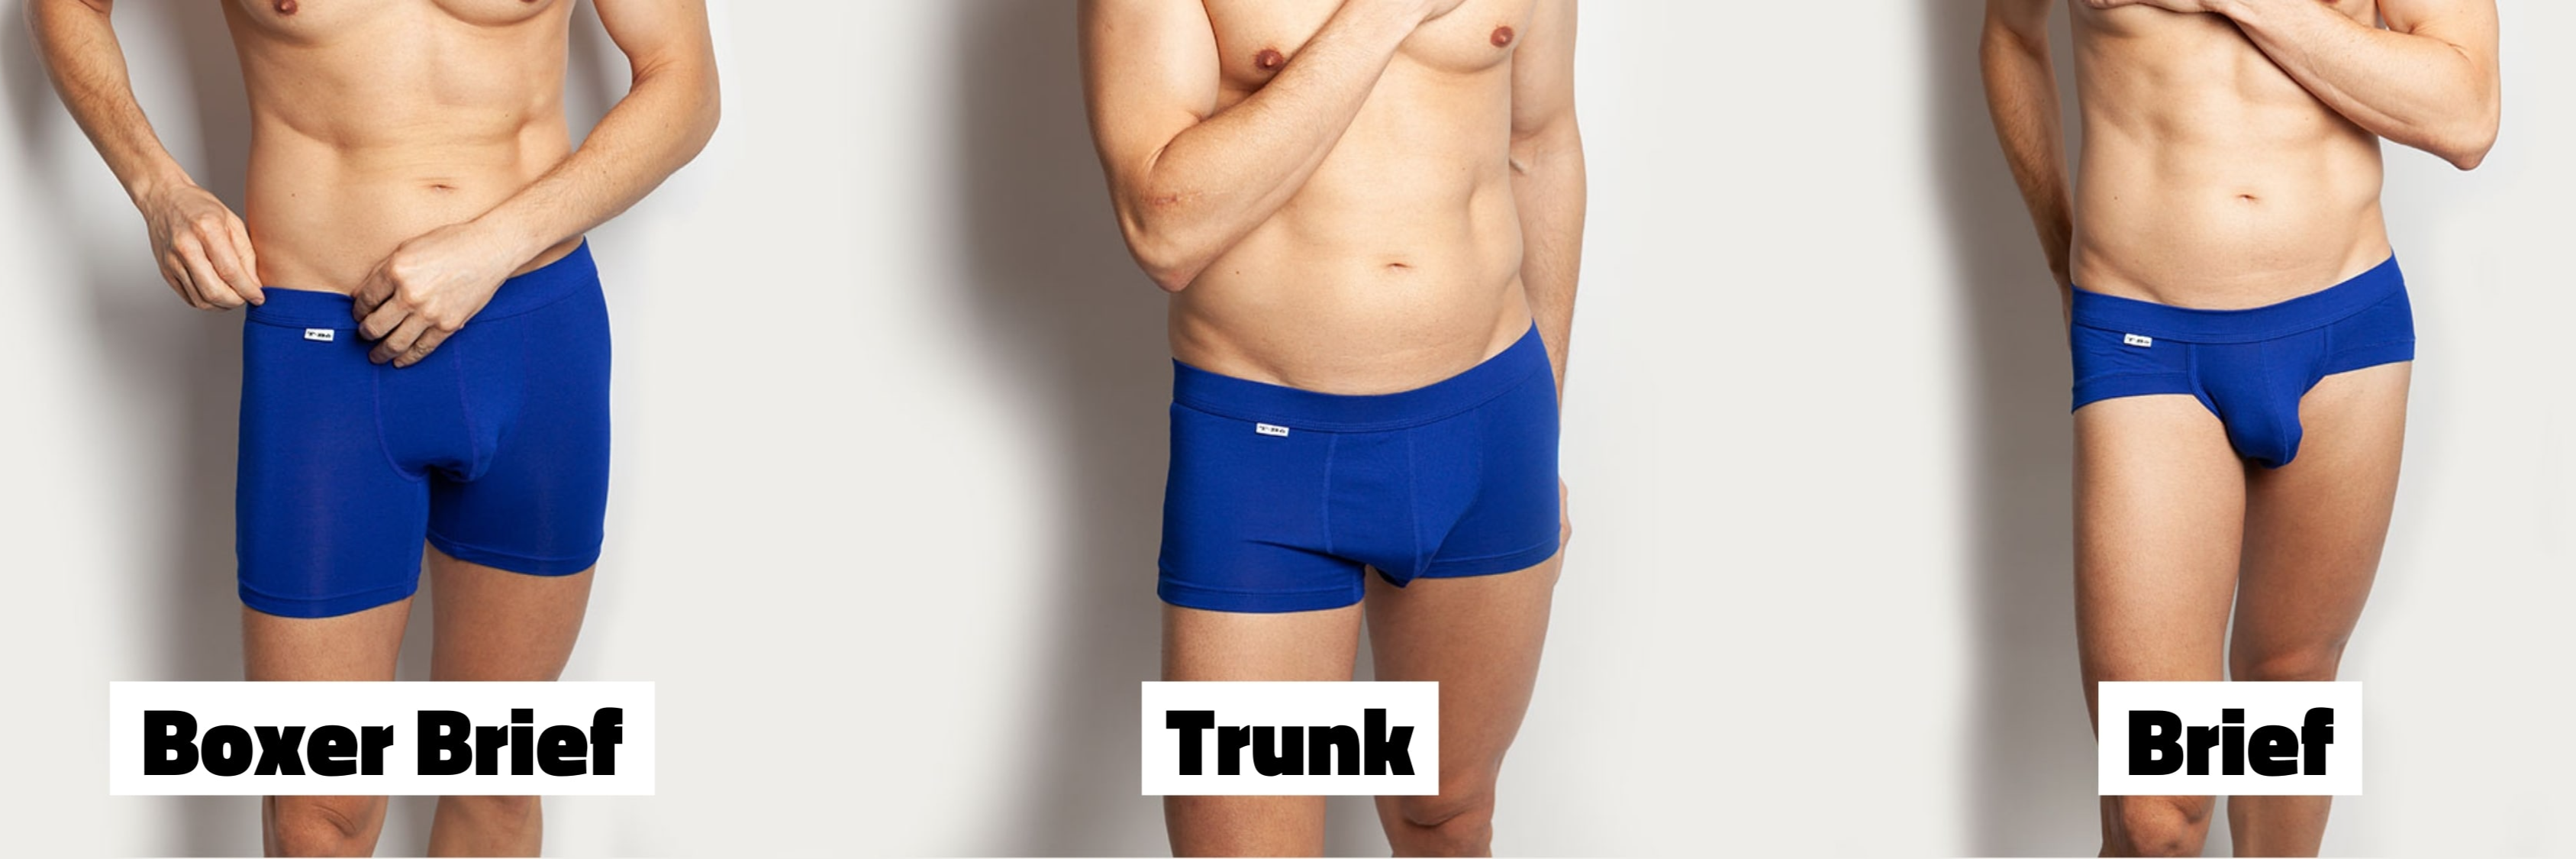 5 Reasons Why You Should Choose Quality Underwear